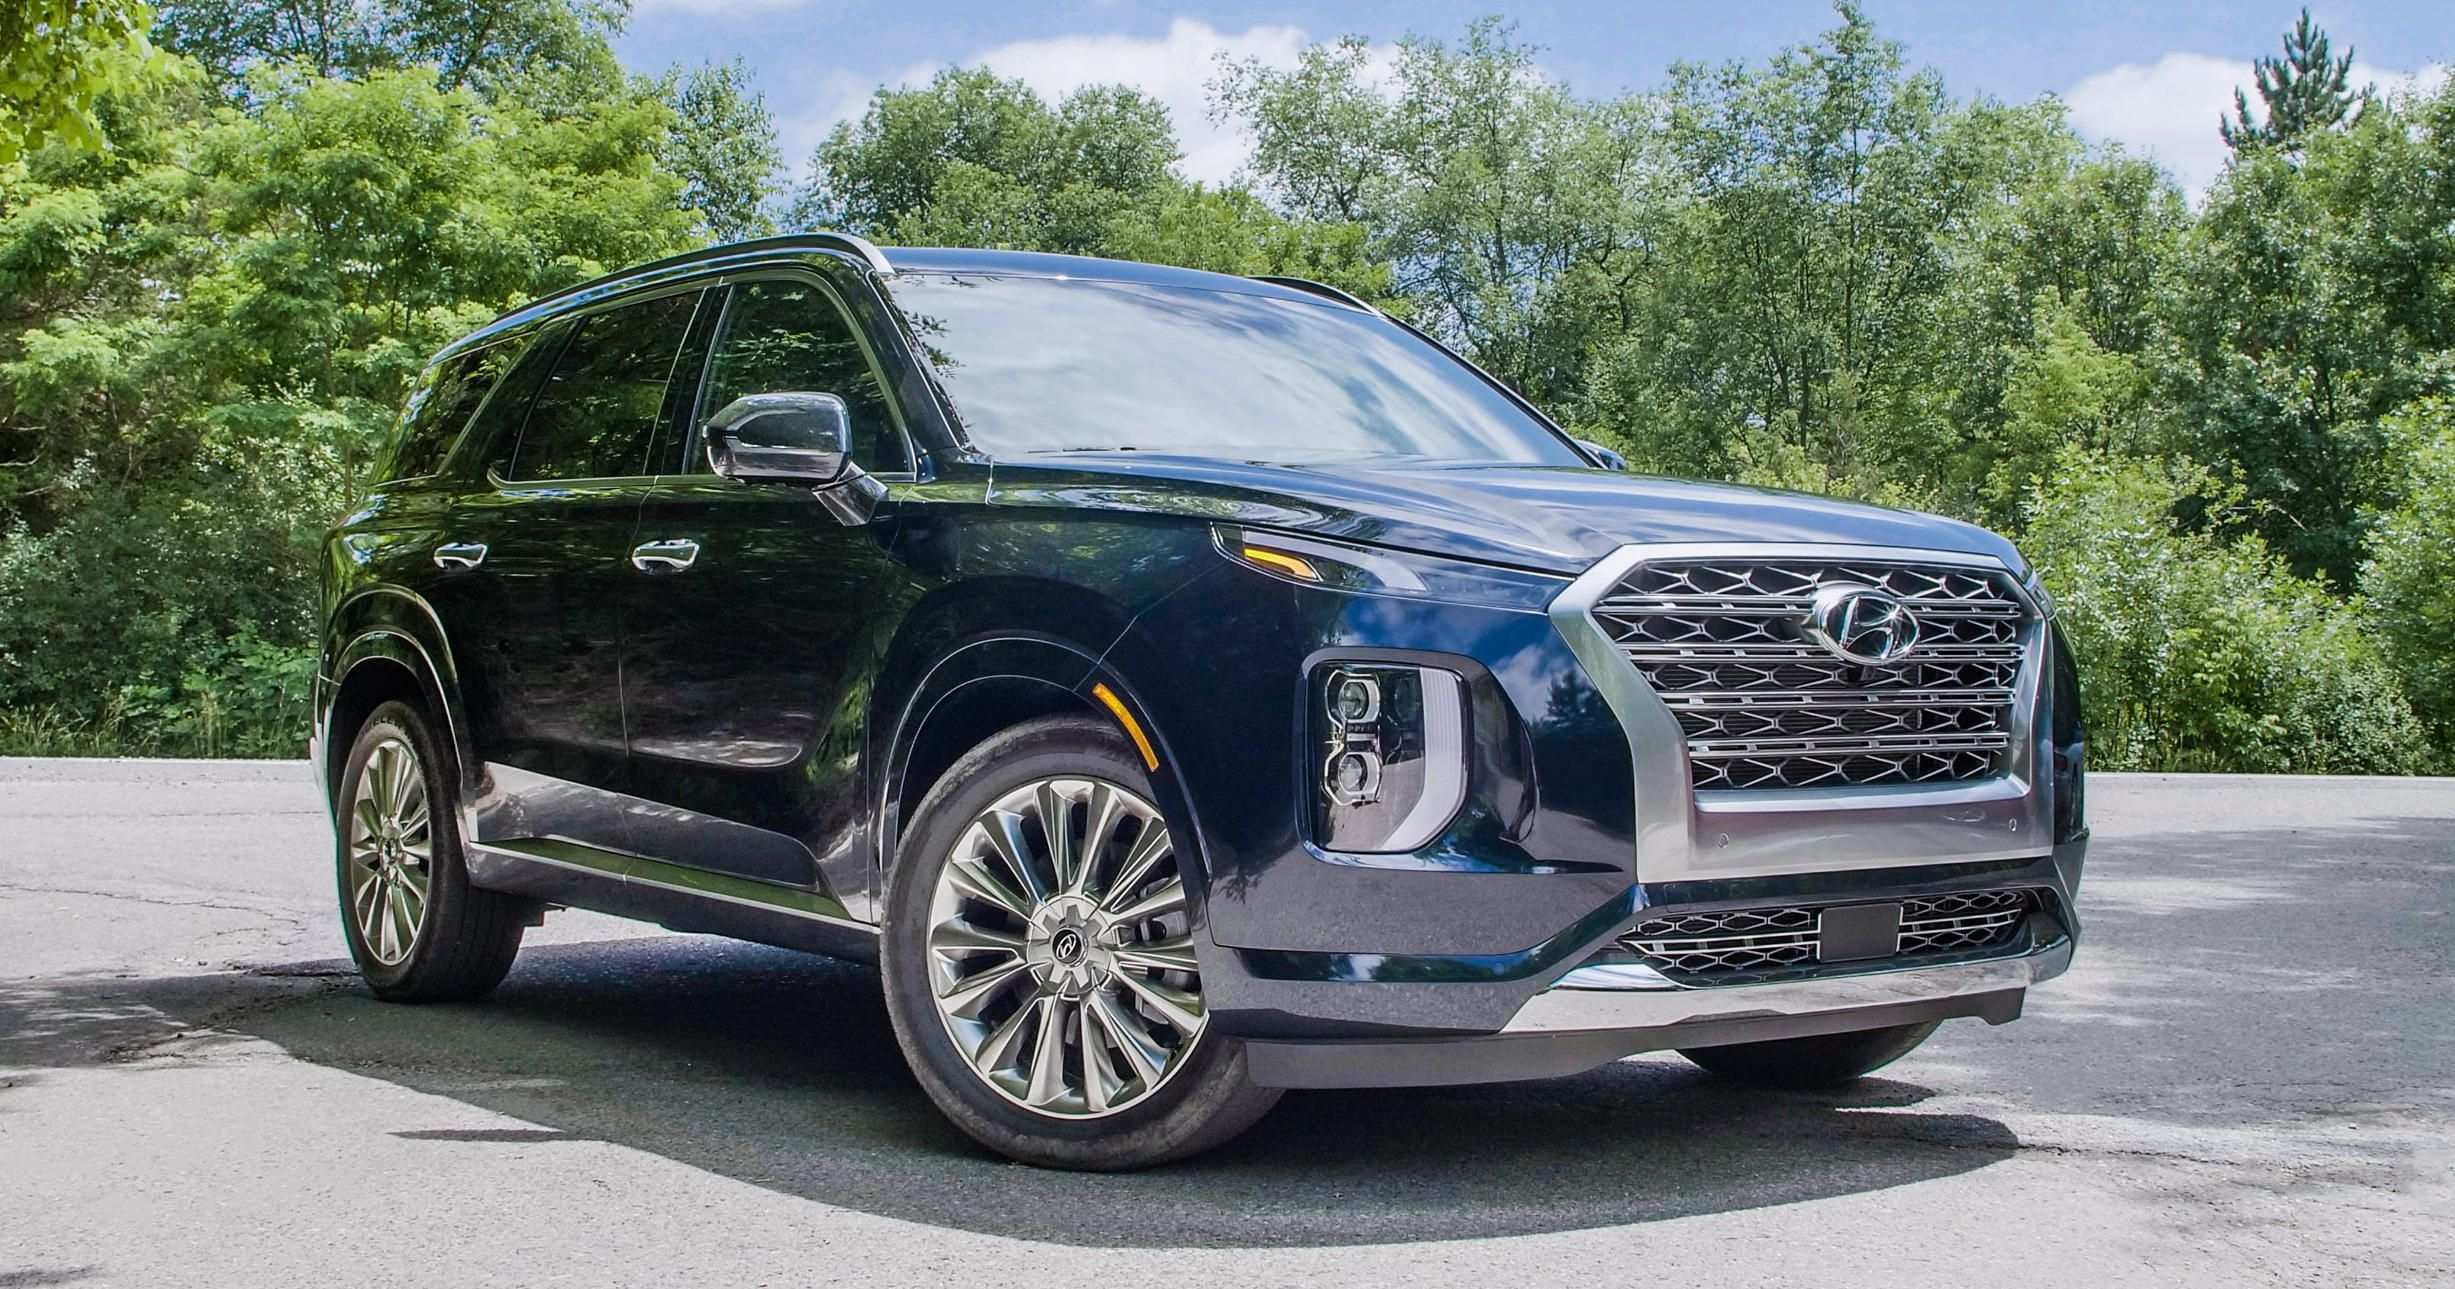 57 Best 2020 Hyundai Genesis Suv Redesign And Review